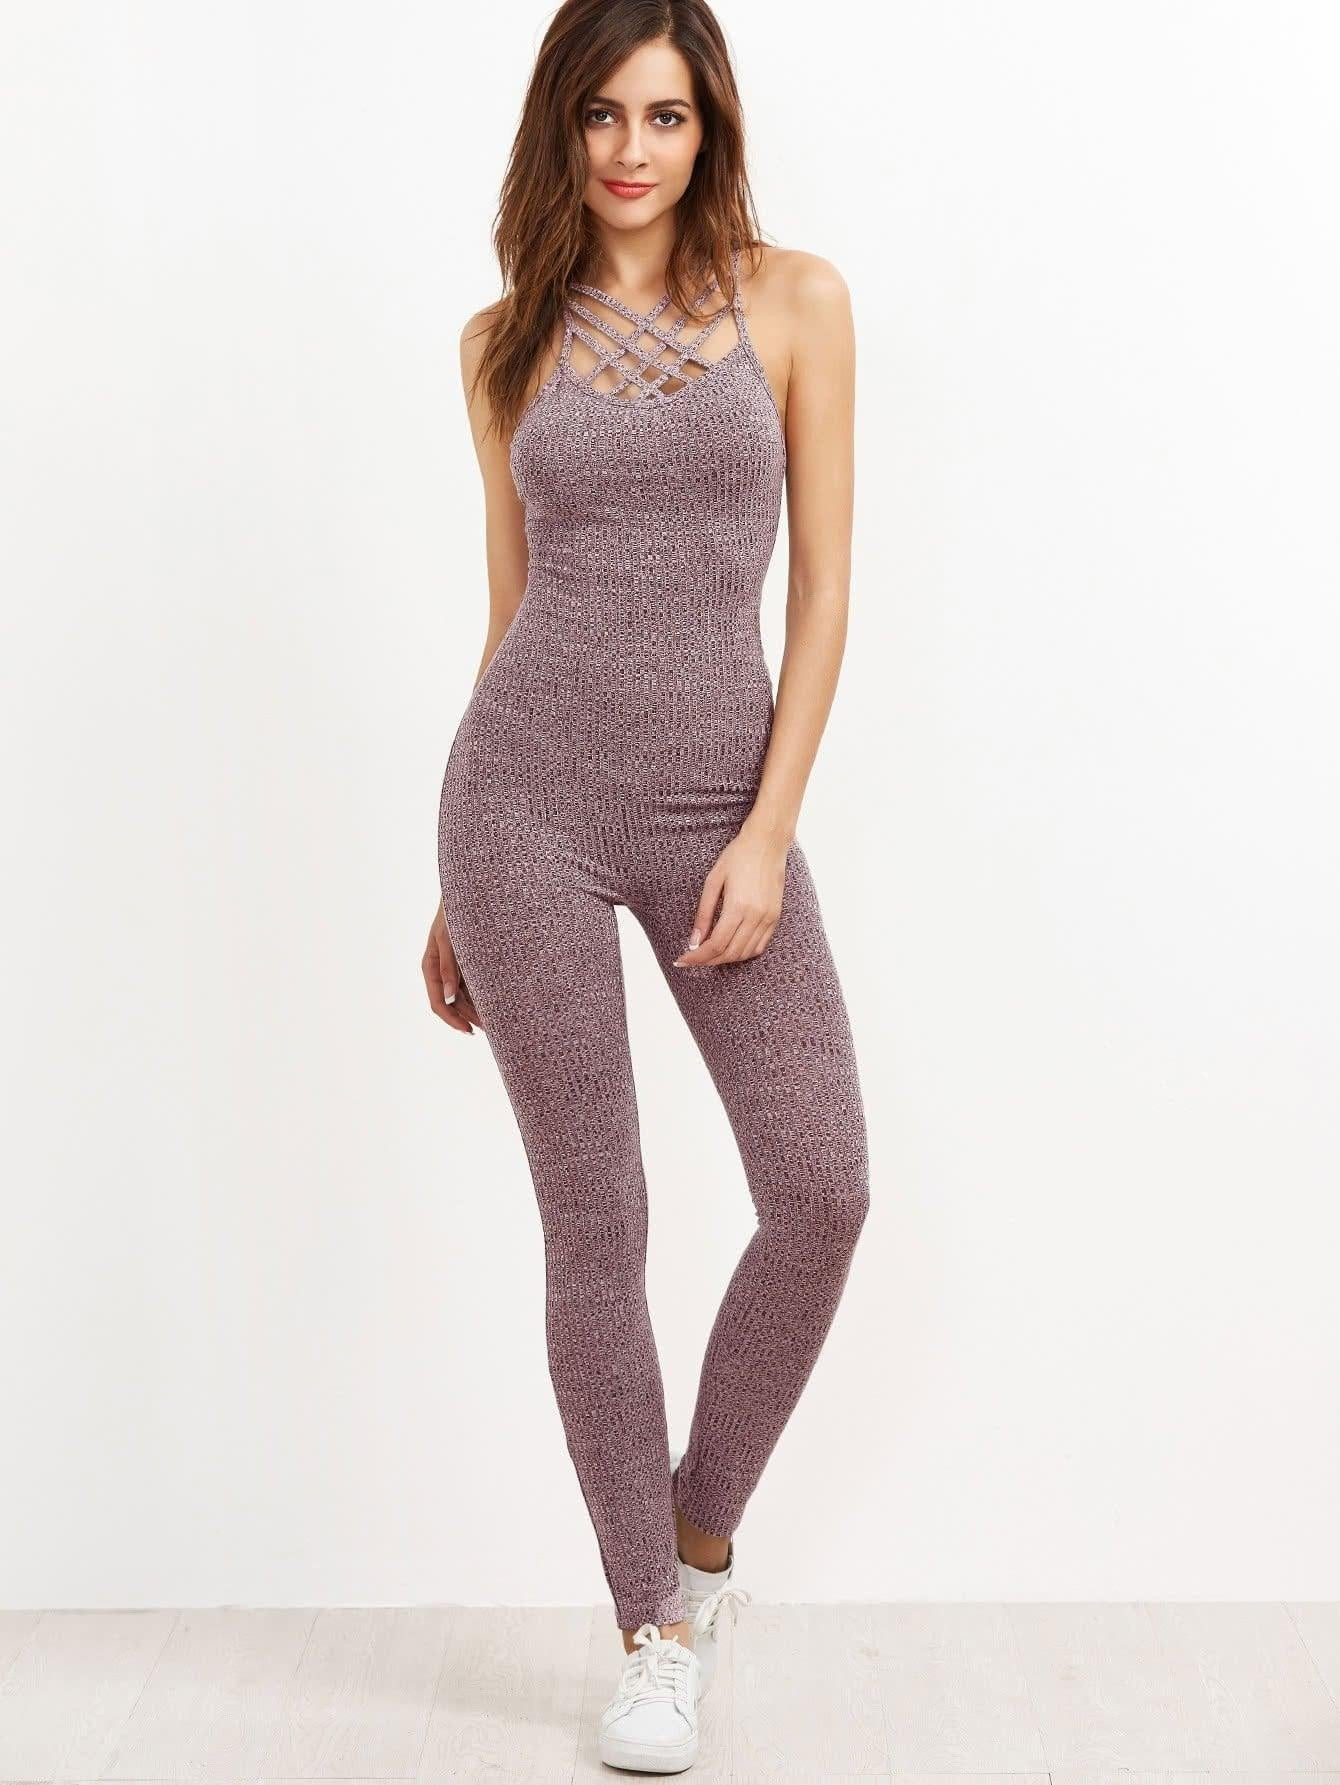 011164ec258 Get Marled Ribbed Knit Caged Neck Unitard Jumpsuit with RS. 869.00